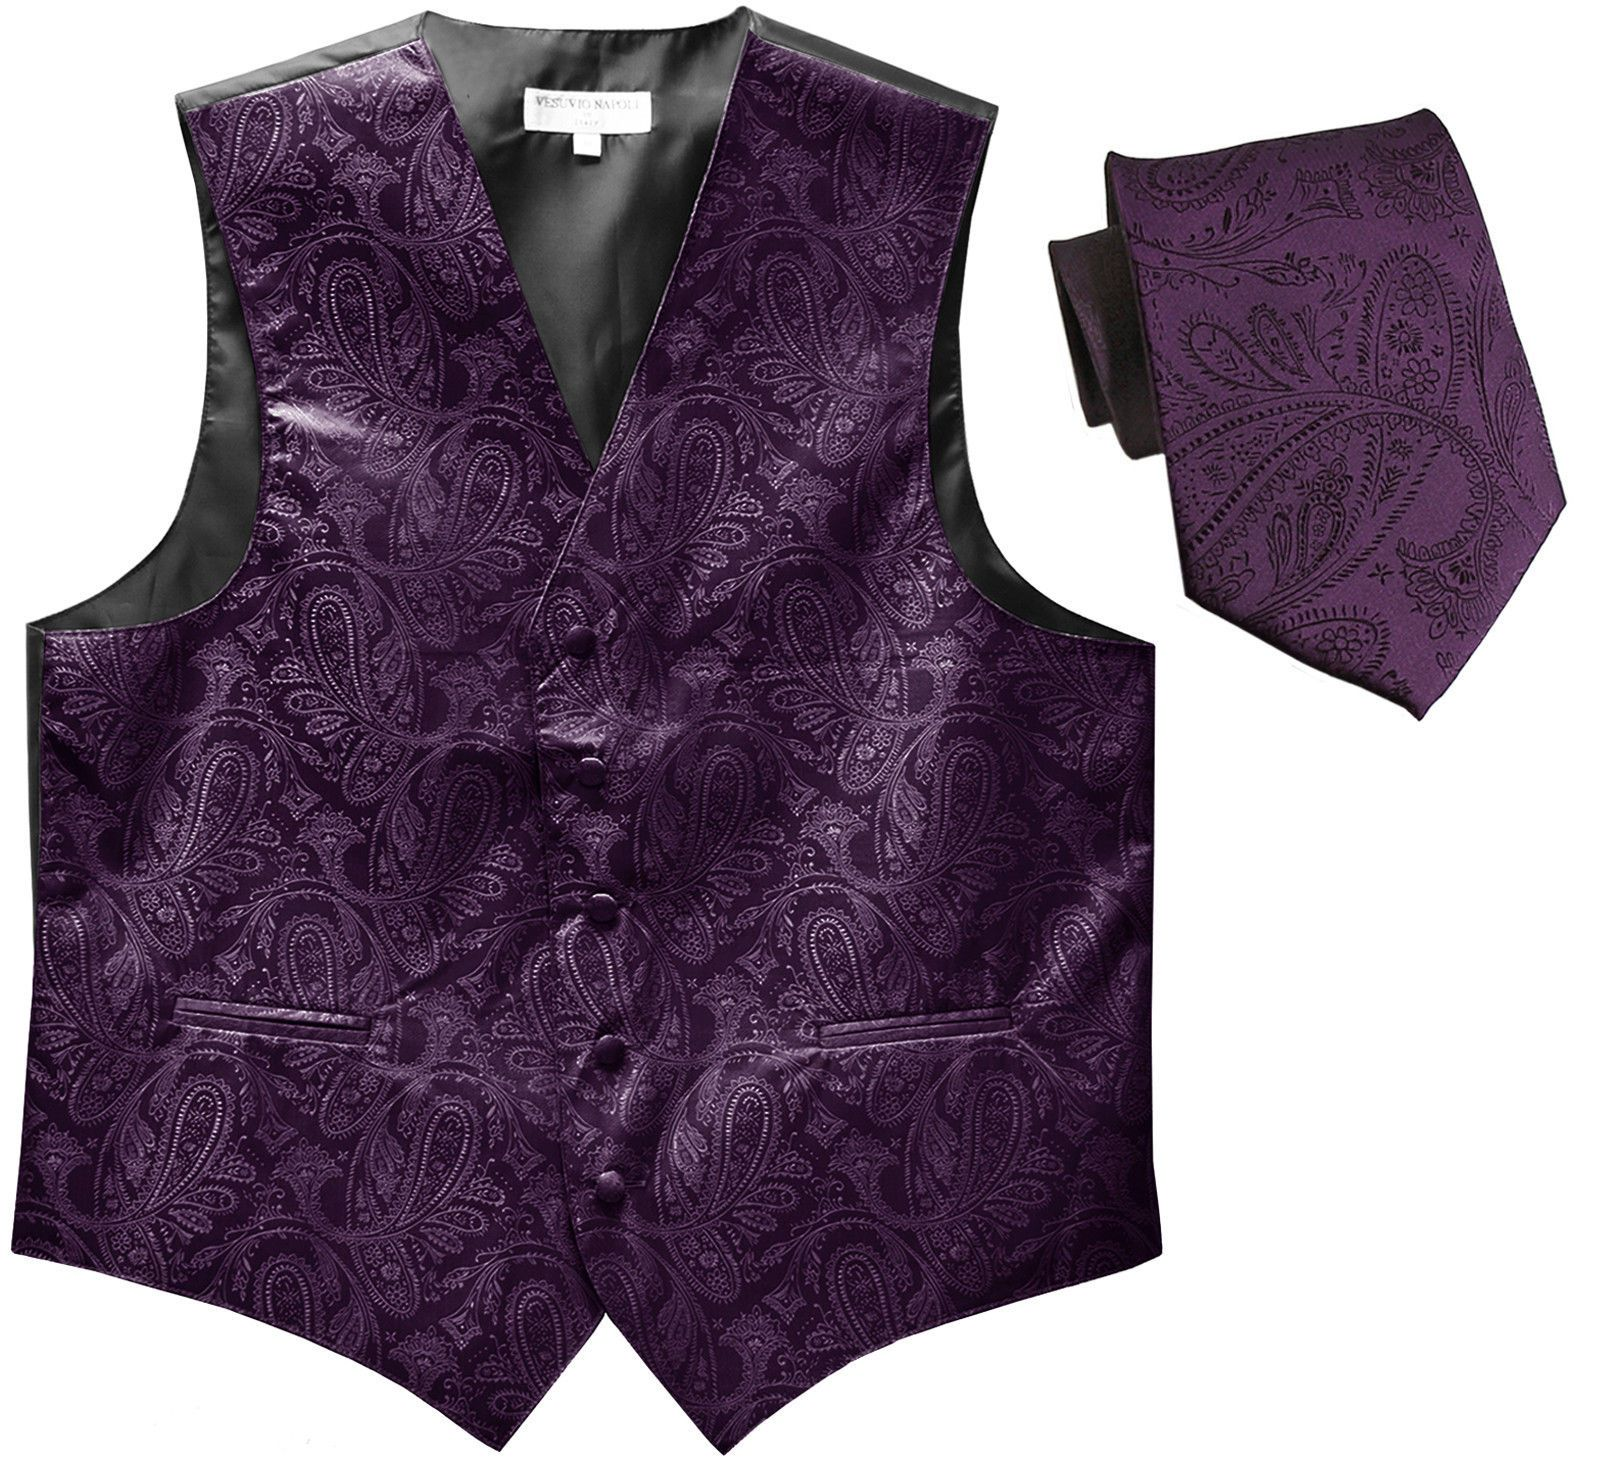 WEDDING PROM MEN/'S LAVENDER PAISLEY FORMAL DRESS TUXEDO VEST /& BOW-TIE SET